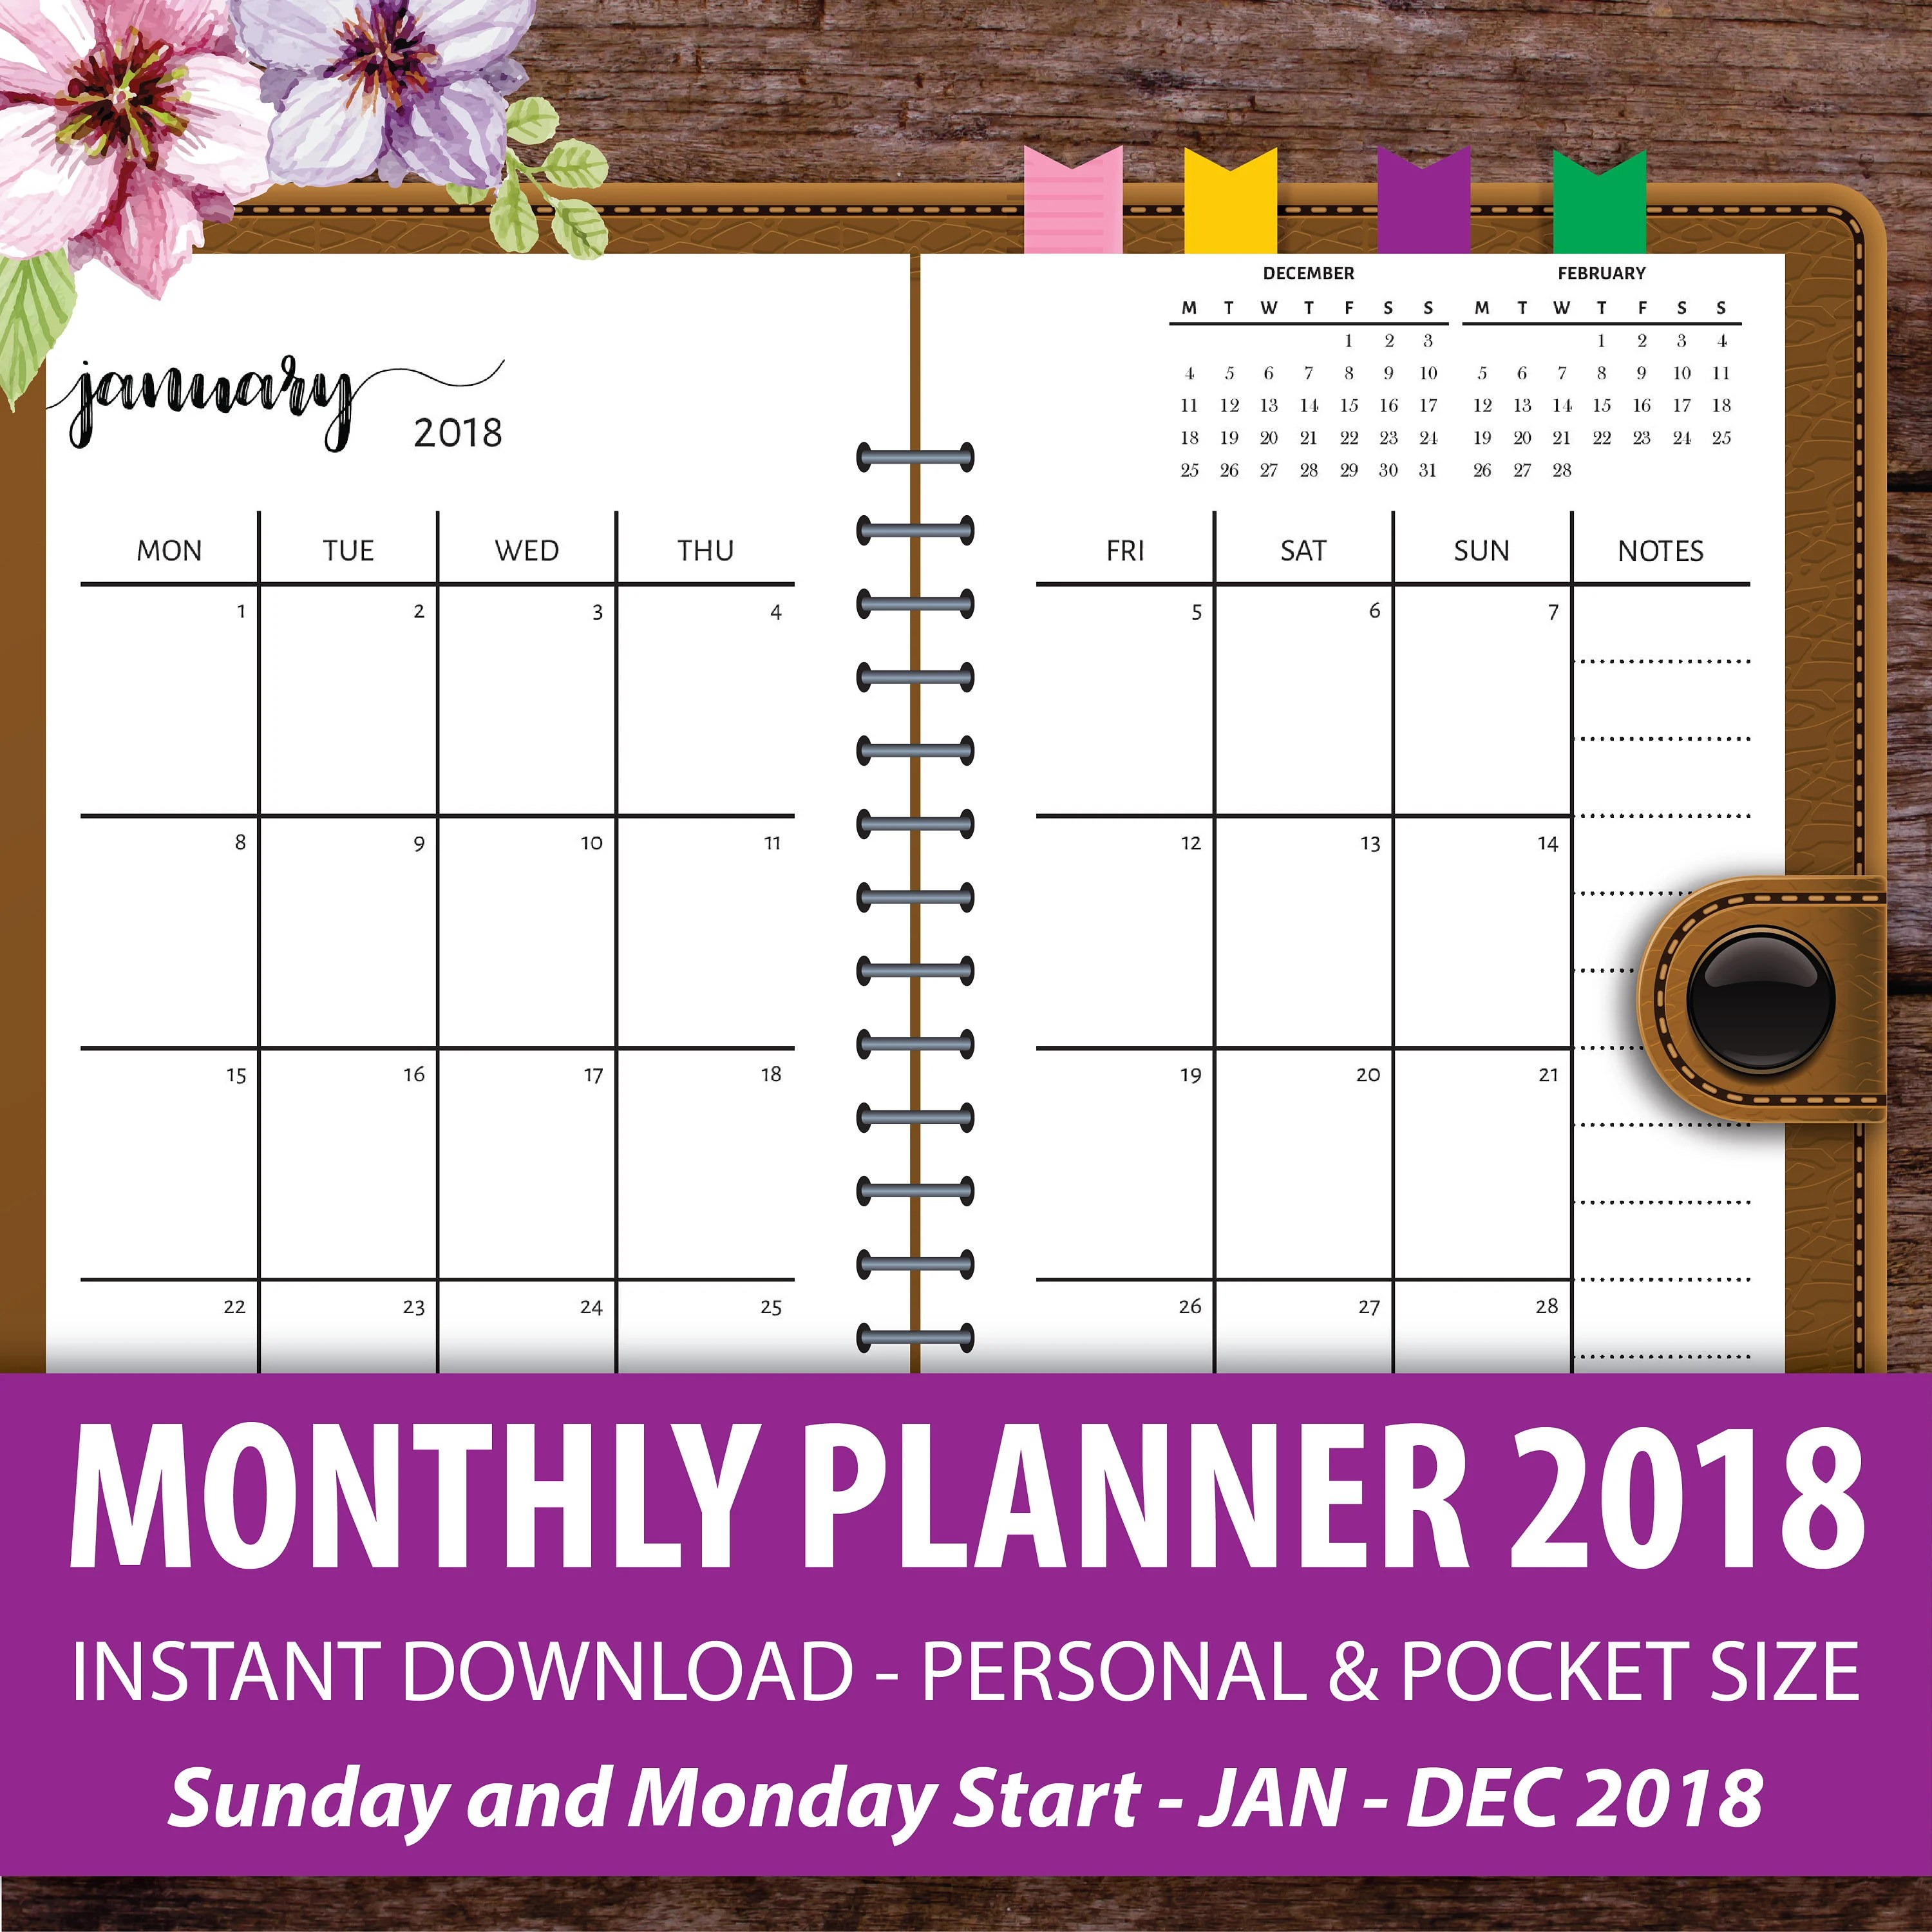 Printable Monthly Planner 2018 Monthly Calendar Planner - printable monthly planner